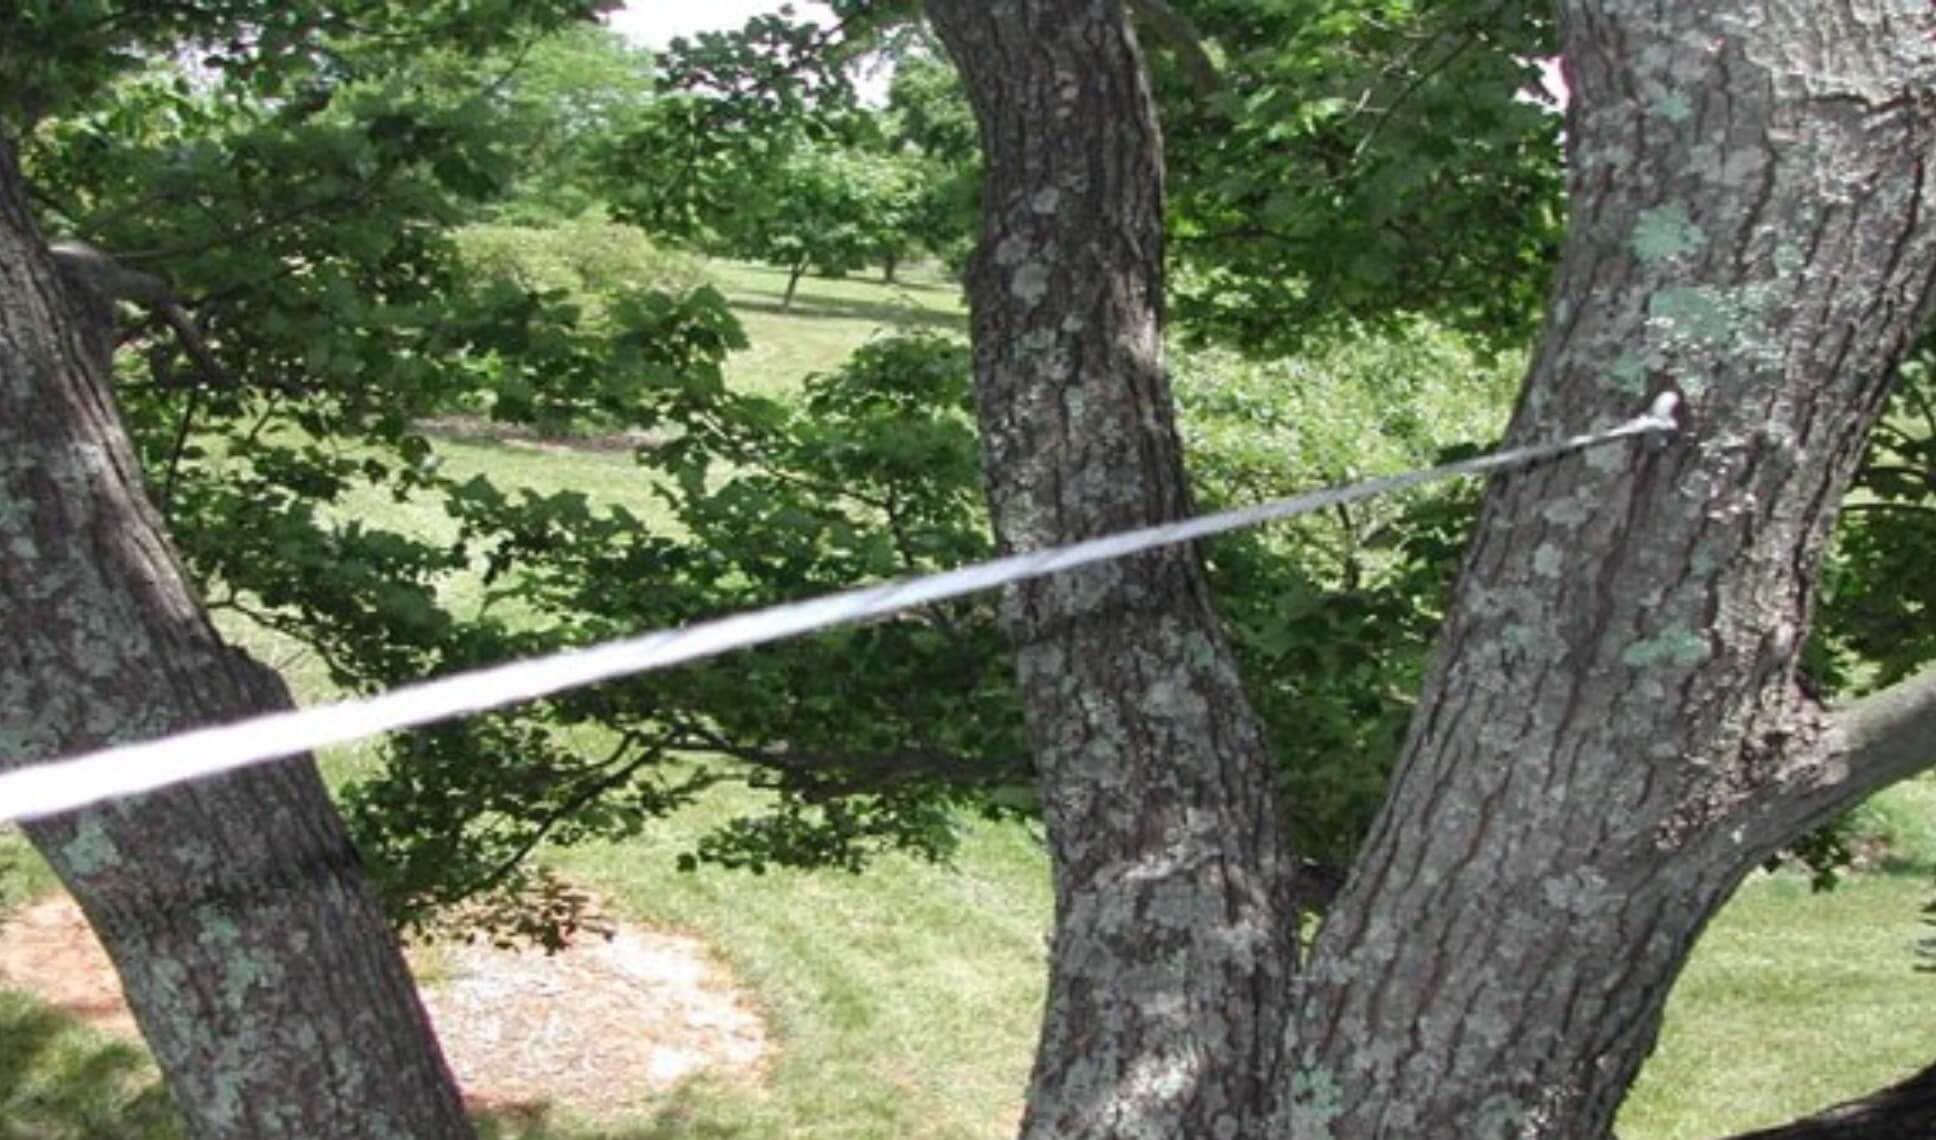 Tree Bracing & Tree Cabling- San Diego Tree Trimming Pros & Tree Removal Services-We Offer Tree Trimming Services, Tree Removal, Tree Pruning, Tree Cutting, Residential and Commercial Tree Trimming Services, Storm Damage, Emergency Tree Removal, Land Clearing, Tree Companies, Tree Care Service, Stump Grinding, and we're the Best Tree Trimming Company Near You Guaranteed!